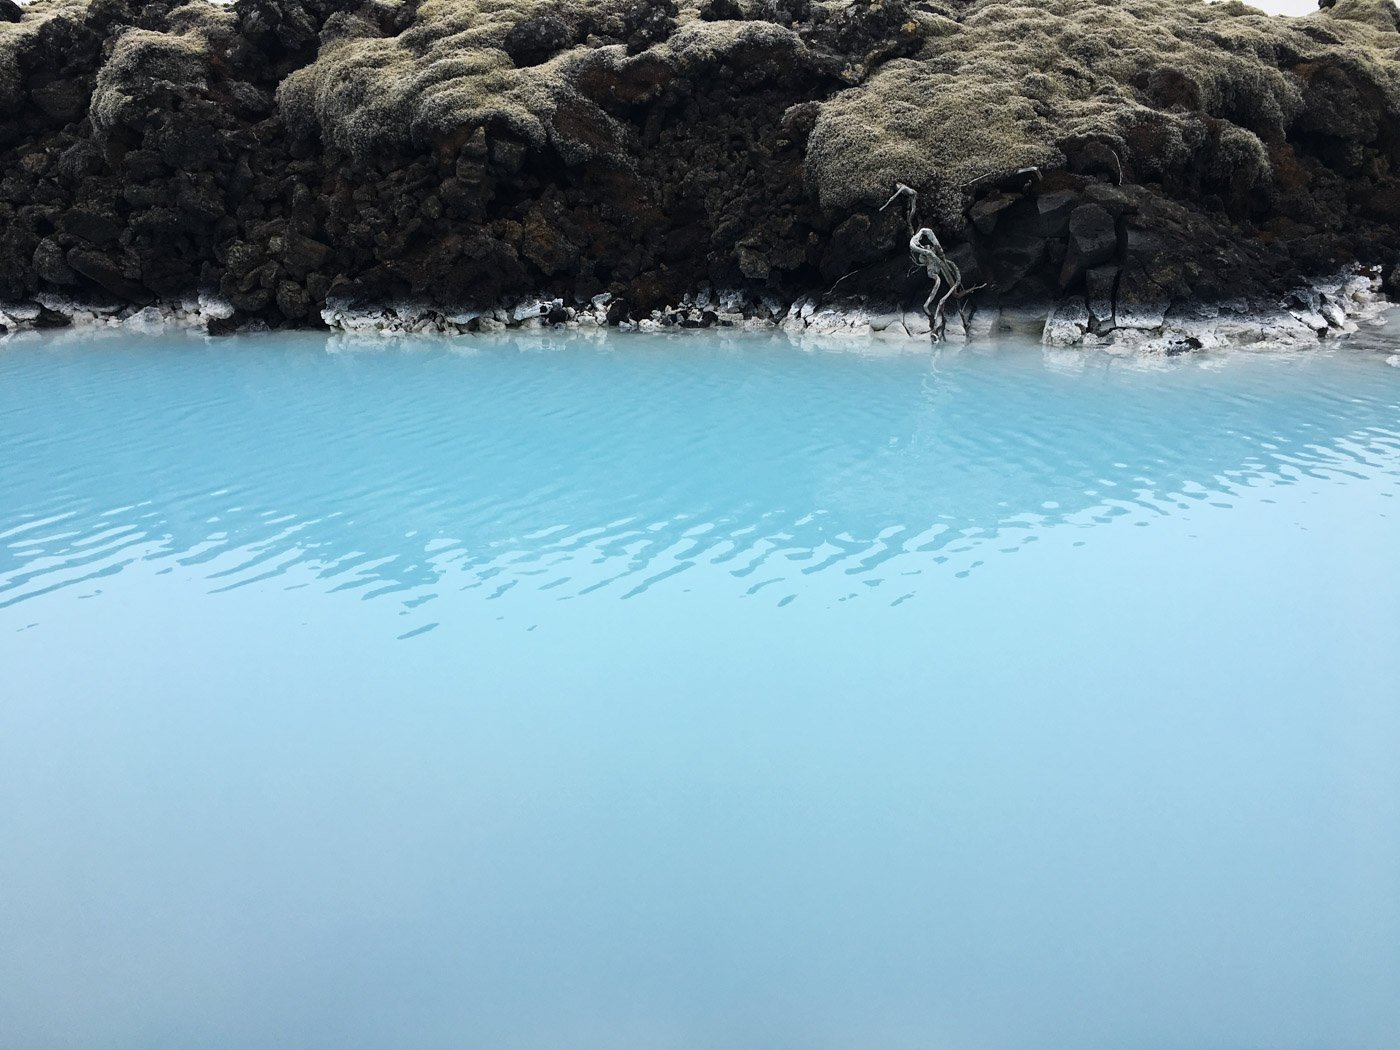 Wondering what you need to bring to the Blue Lagoon in Iceland? Here is the Ultimate Blue Lagoon Packing List: Everything you do and do not need to bring!